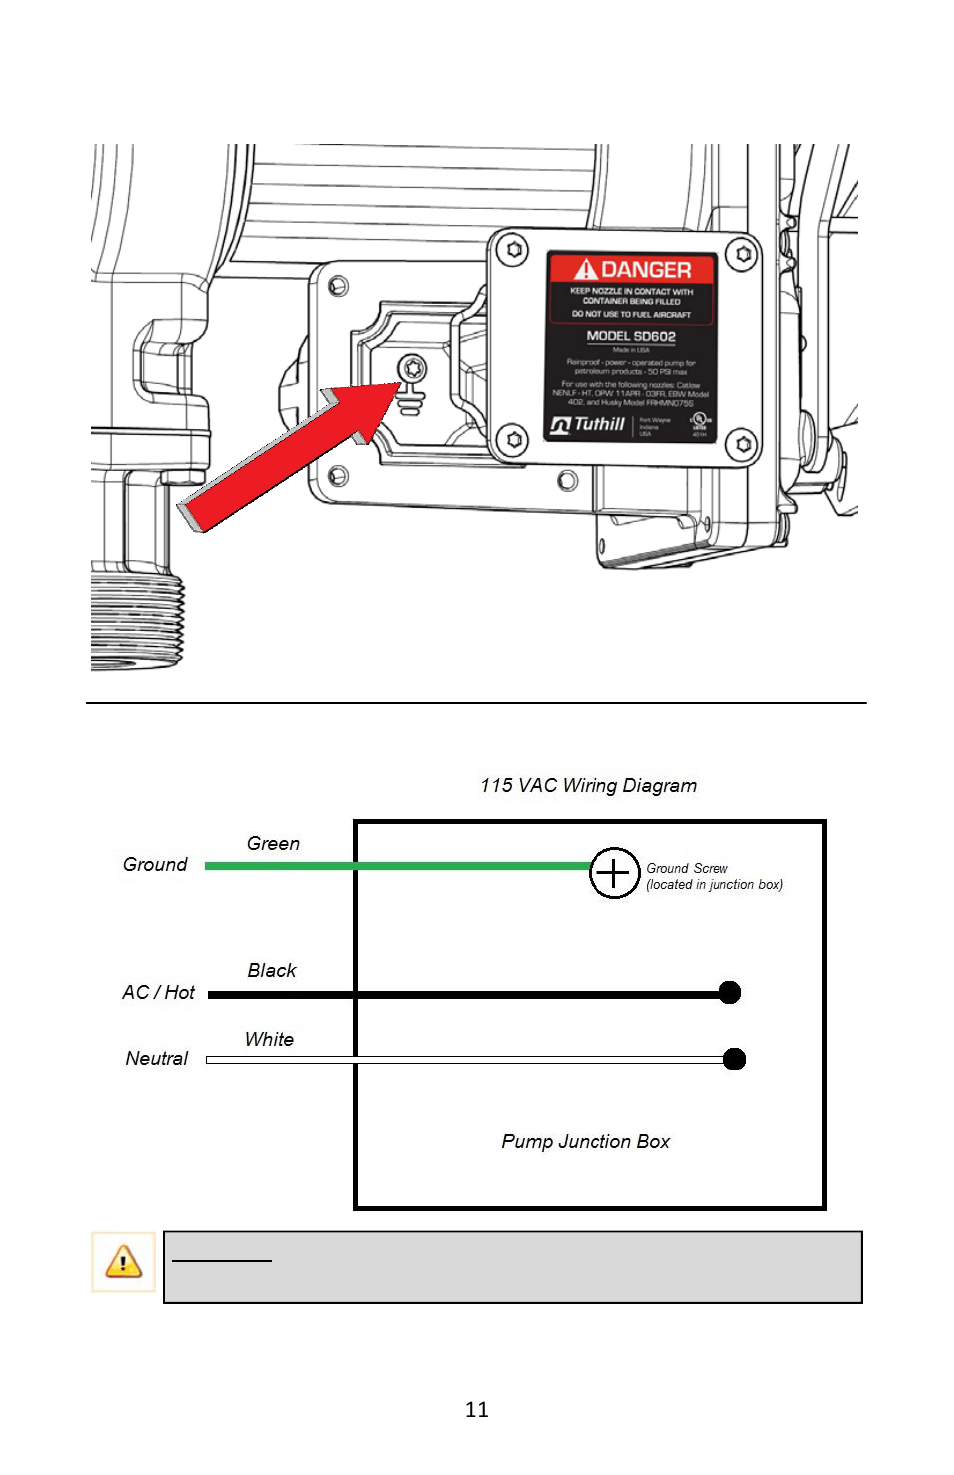 hight resolution of dc pump wiring diagram simple wiring schema basic ignition wiring diagram ac wiring diagram ac